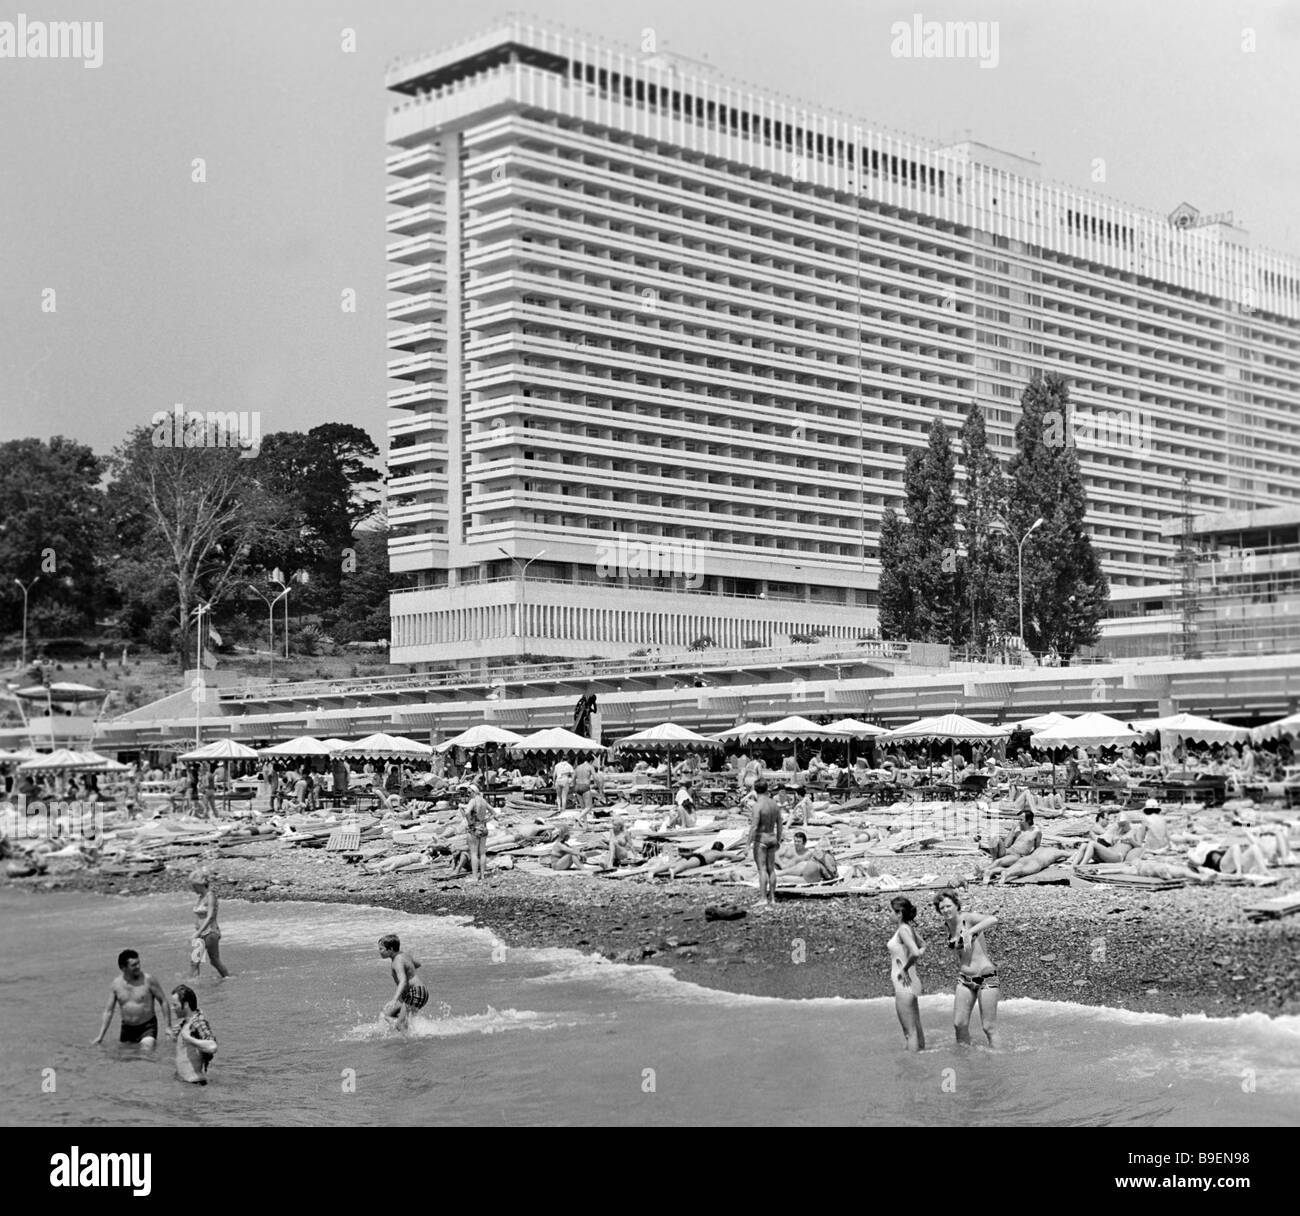 Vacationers on the beach of the Pearl Hotel - Stock Image